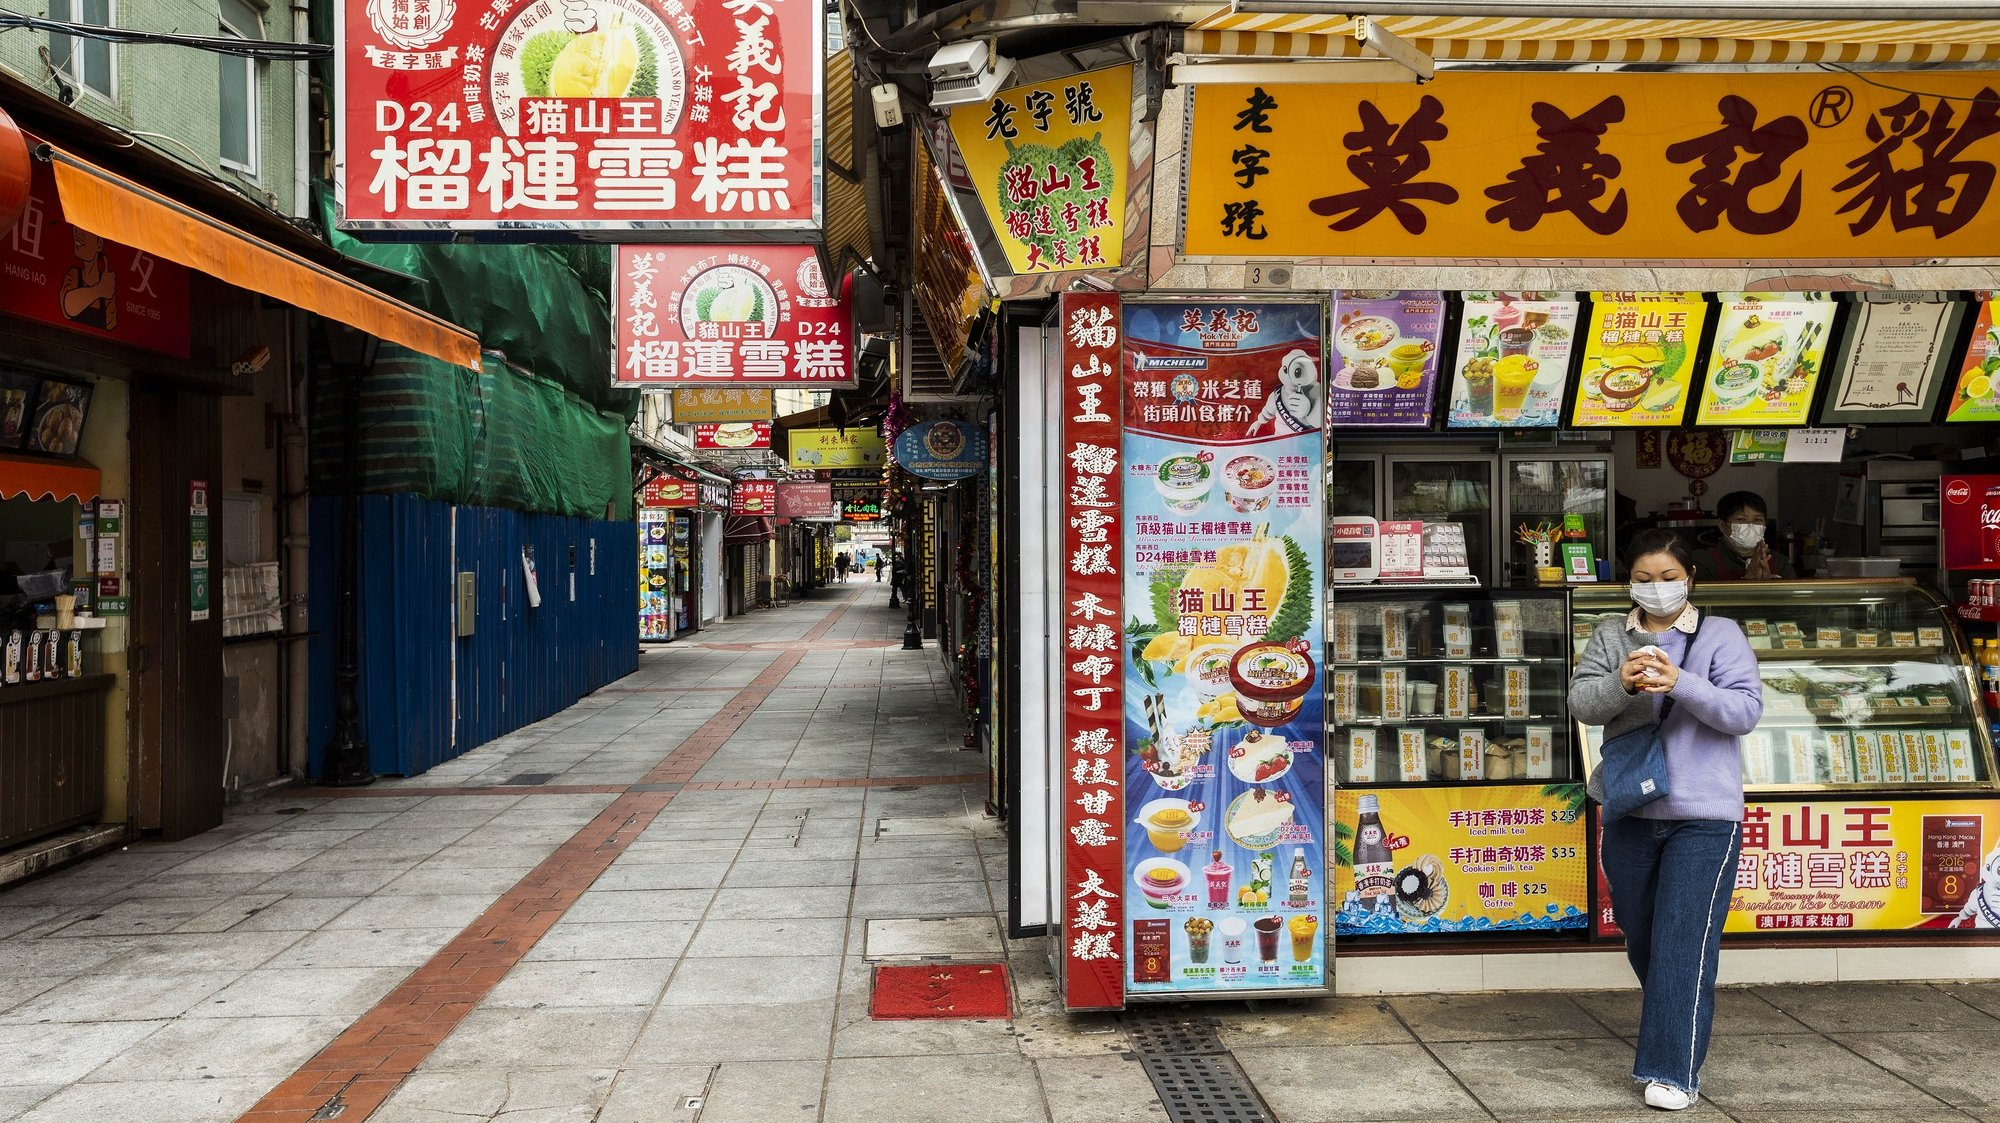 An open food store in an empty street in Macao, China, 07 February 2020. The coronavirus outbreak is contaminating local Portuguese businesses in Macao, robbing customers and hoping to recover, in some cases, the financial health that protests in Hong Kong had already compromised. CARMO CORREIA/LUSA